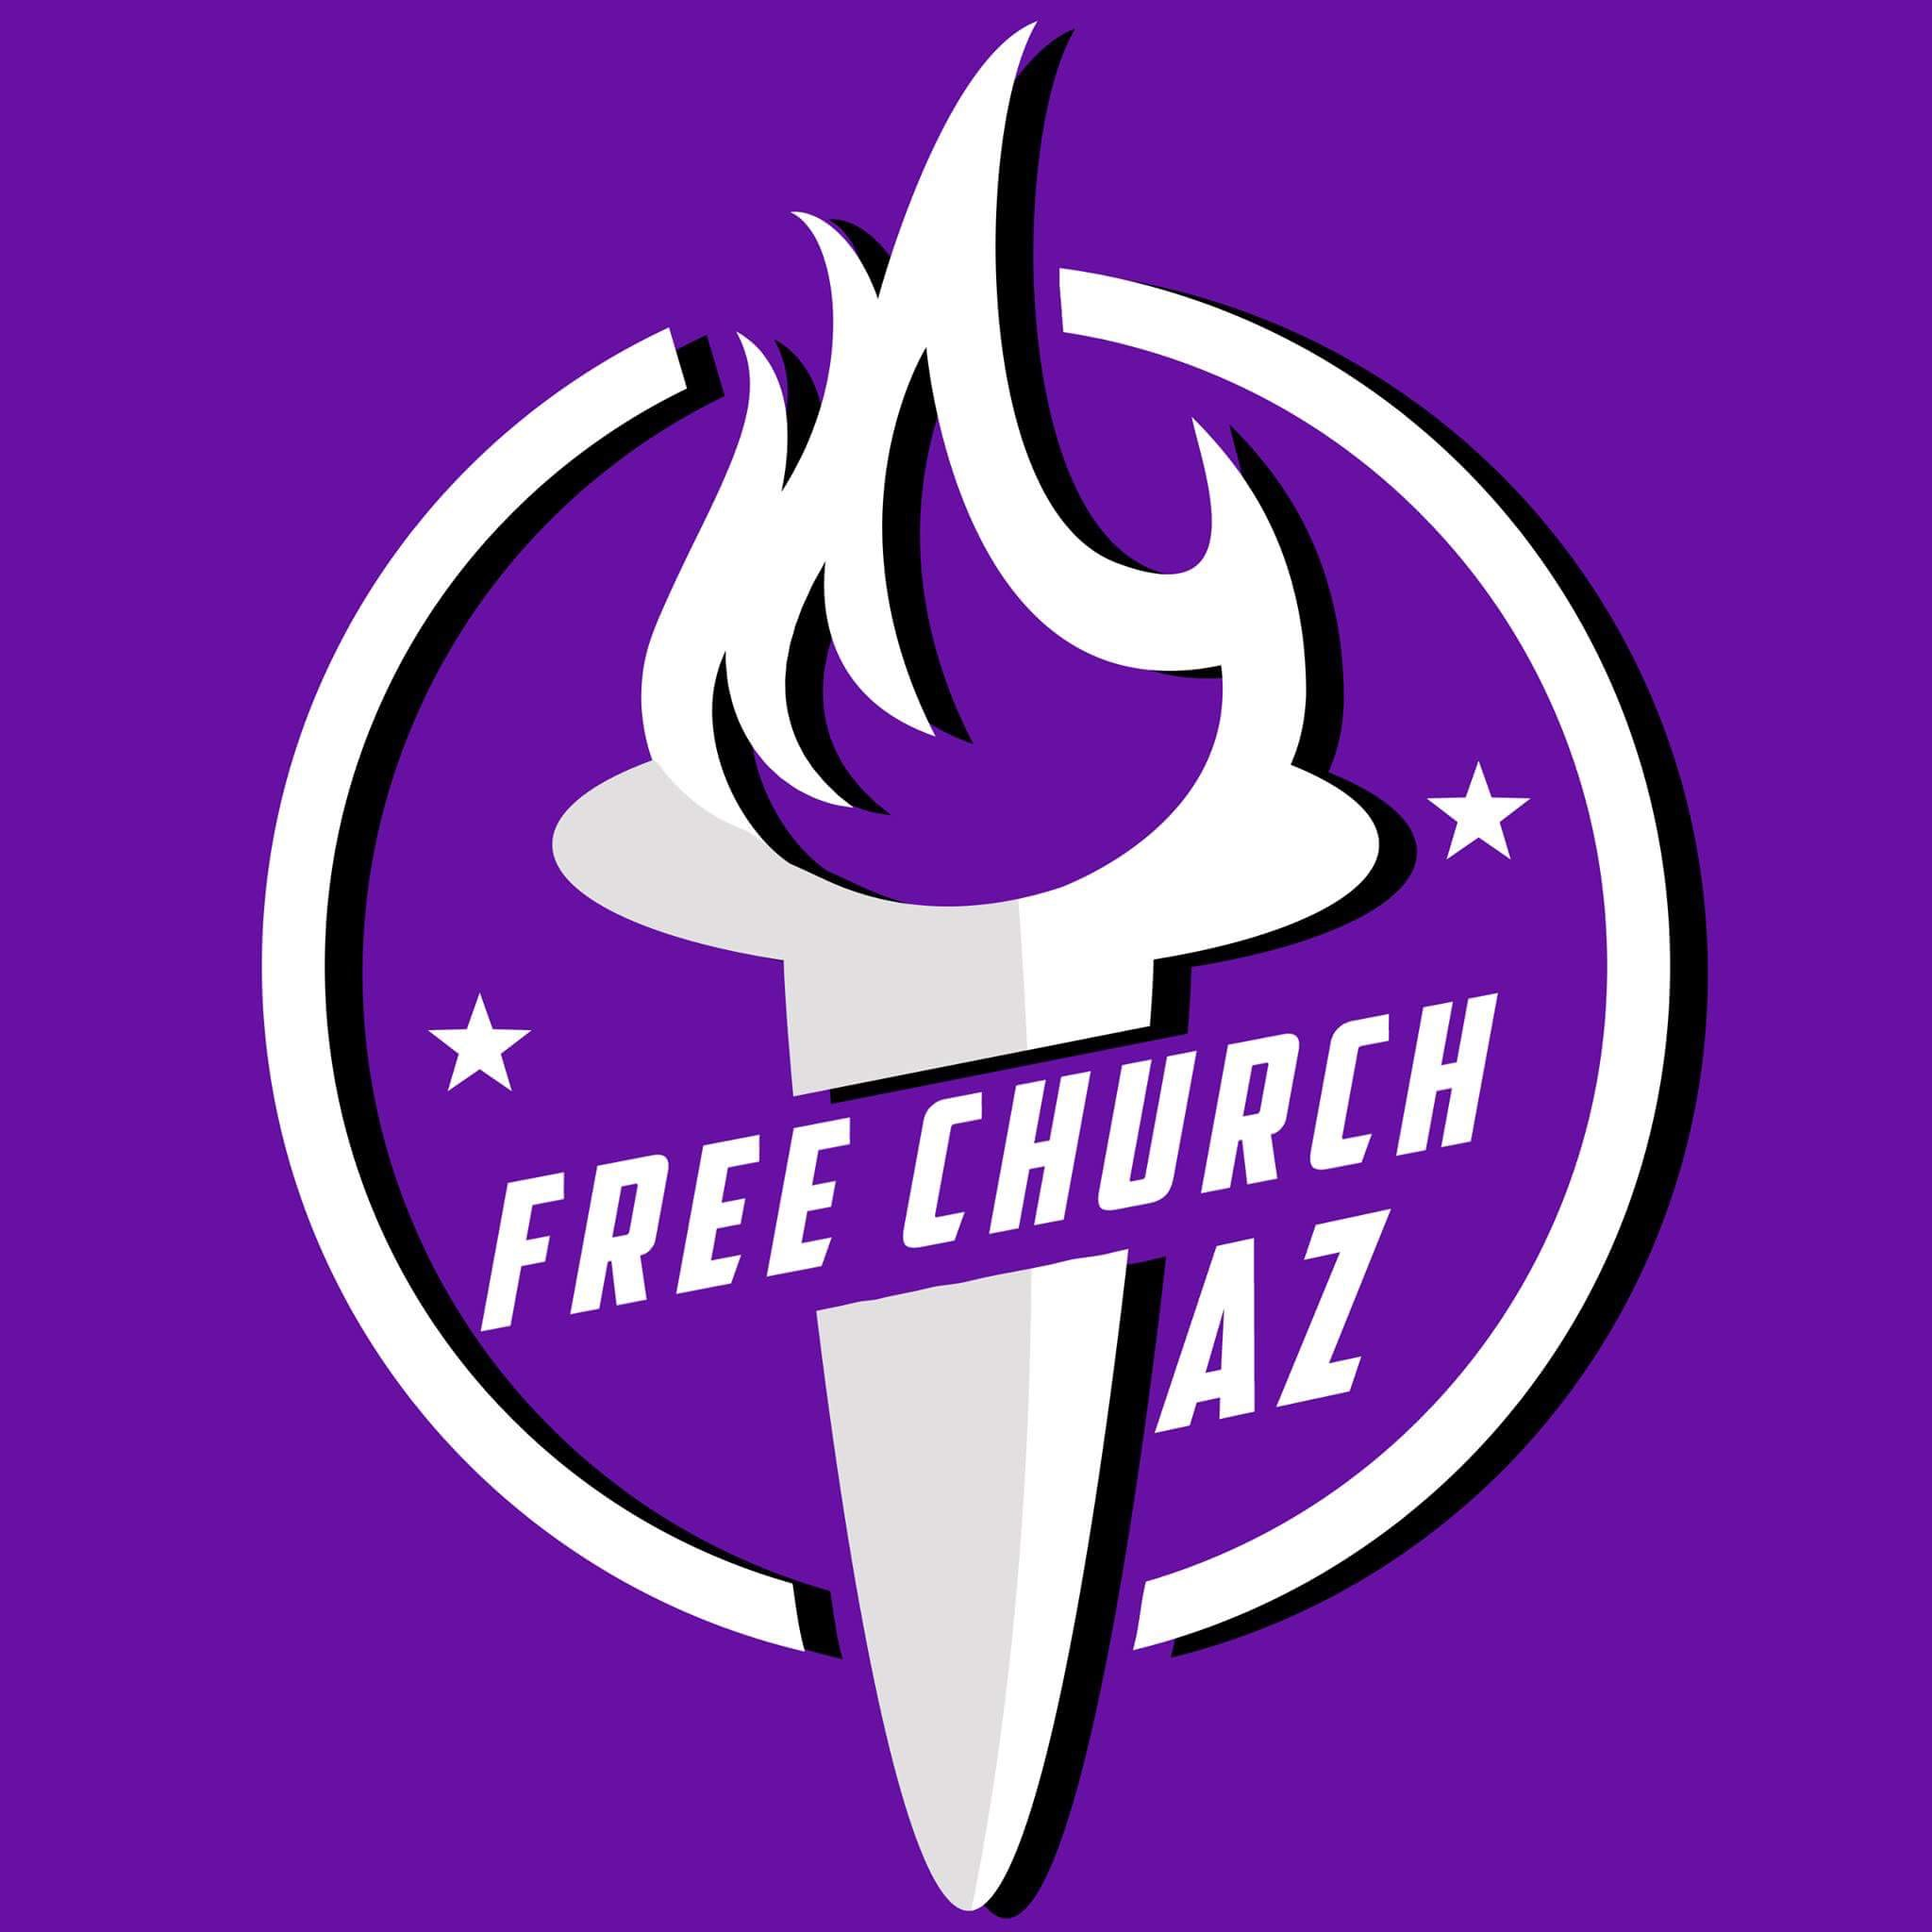 Free Church AZ Ministries